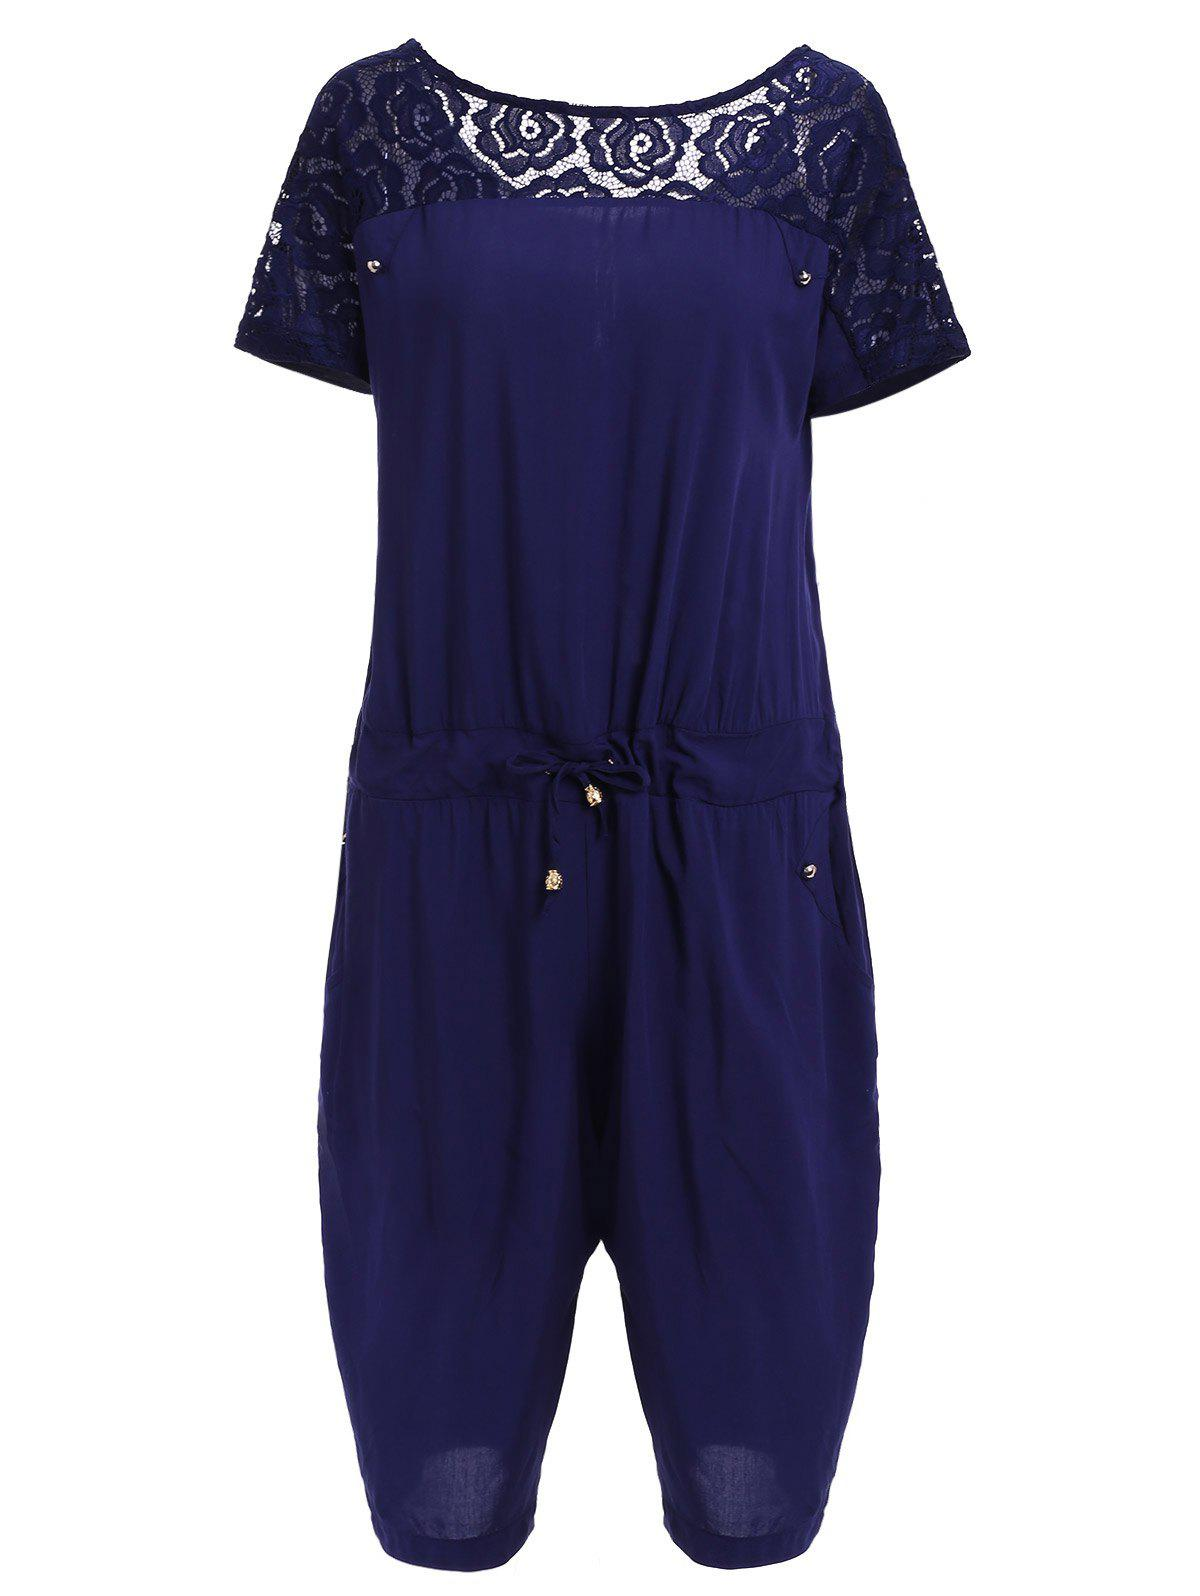 Casual Style Round Neck Short Sleeve Lace Spliced Plus Size Women's Romper - PURPLISH BLUE L